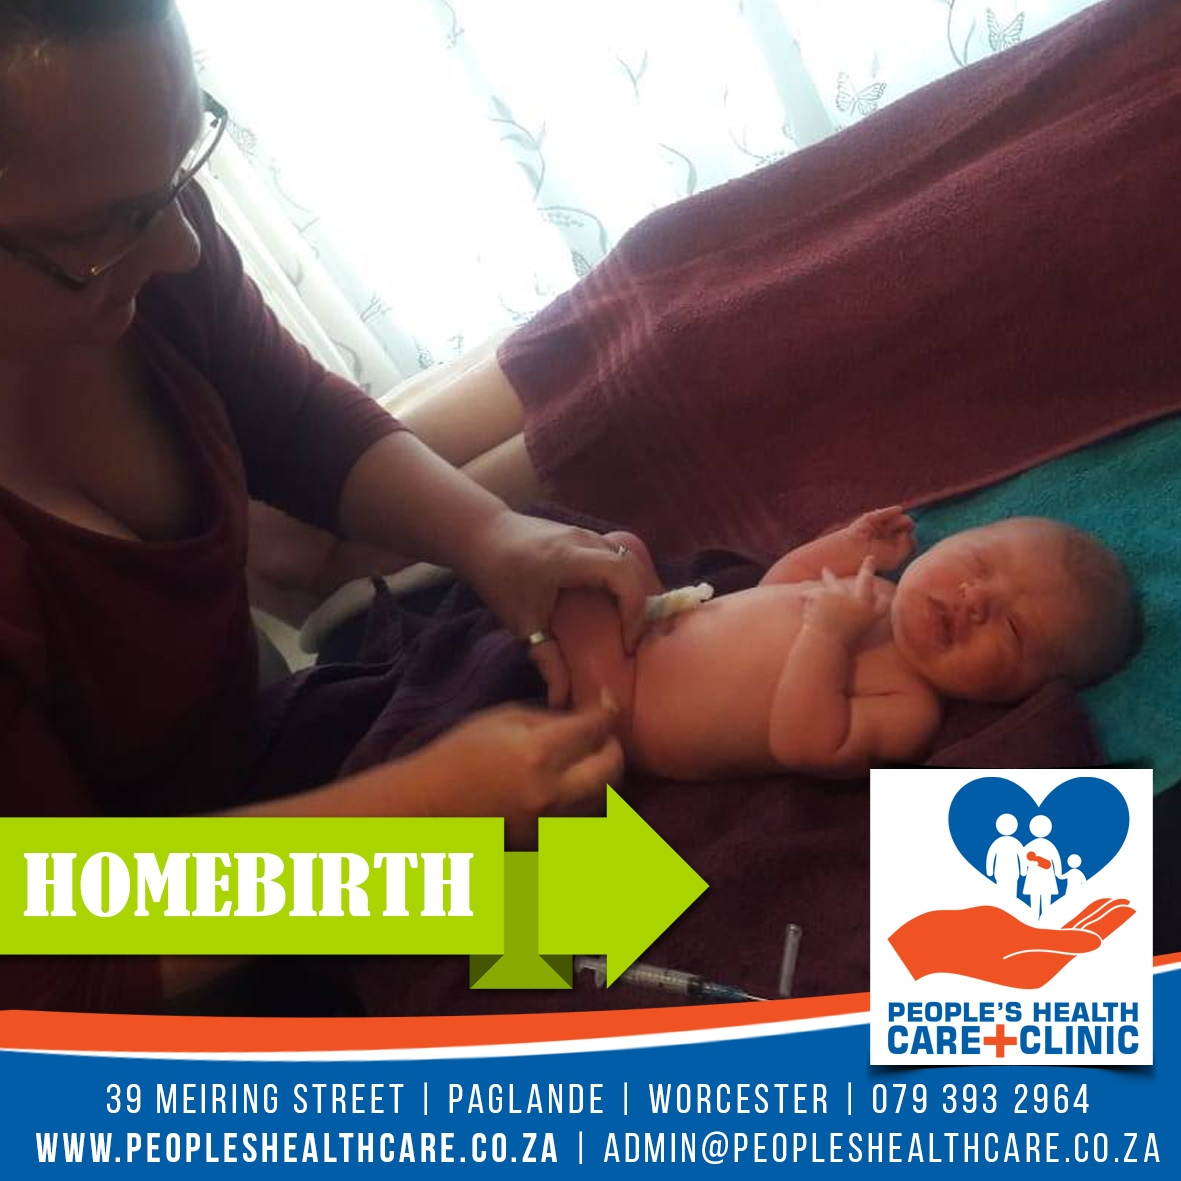 peoples-health-care-clinic-worcester-homebirth_1_1